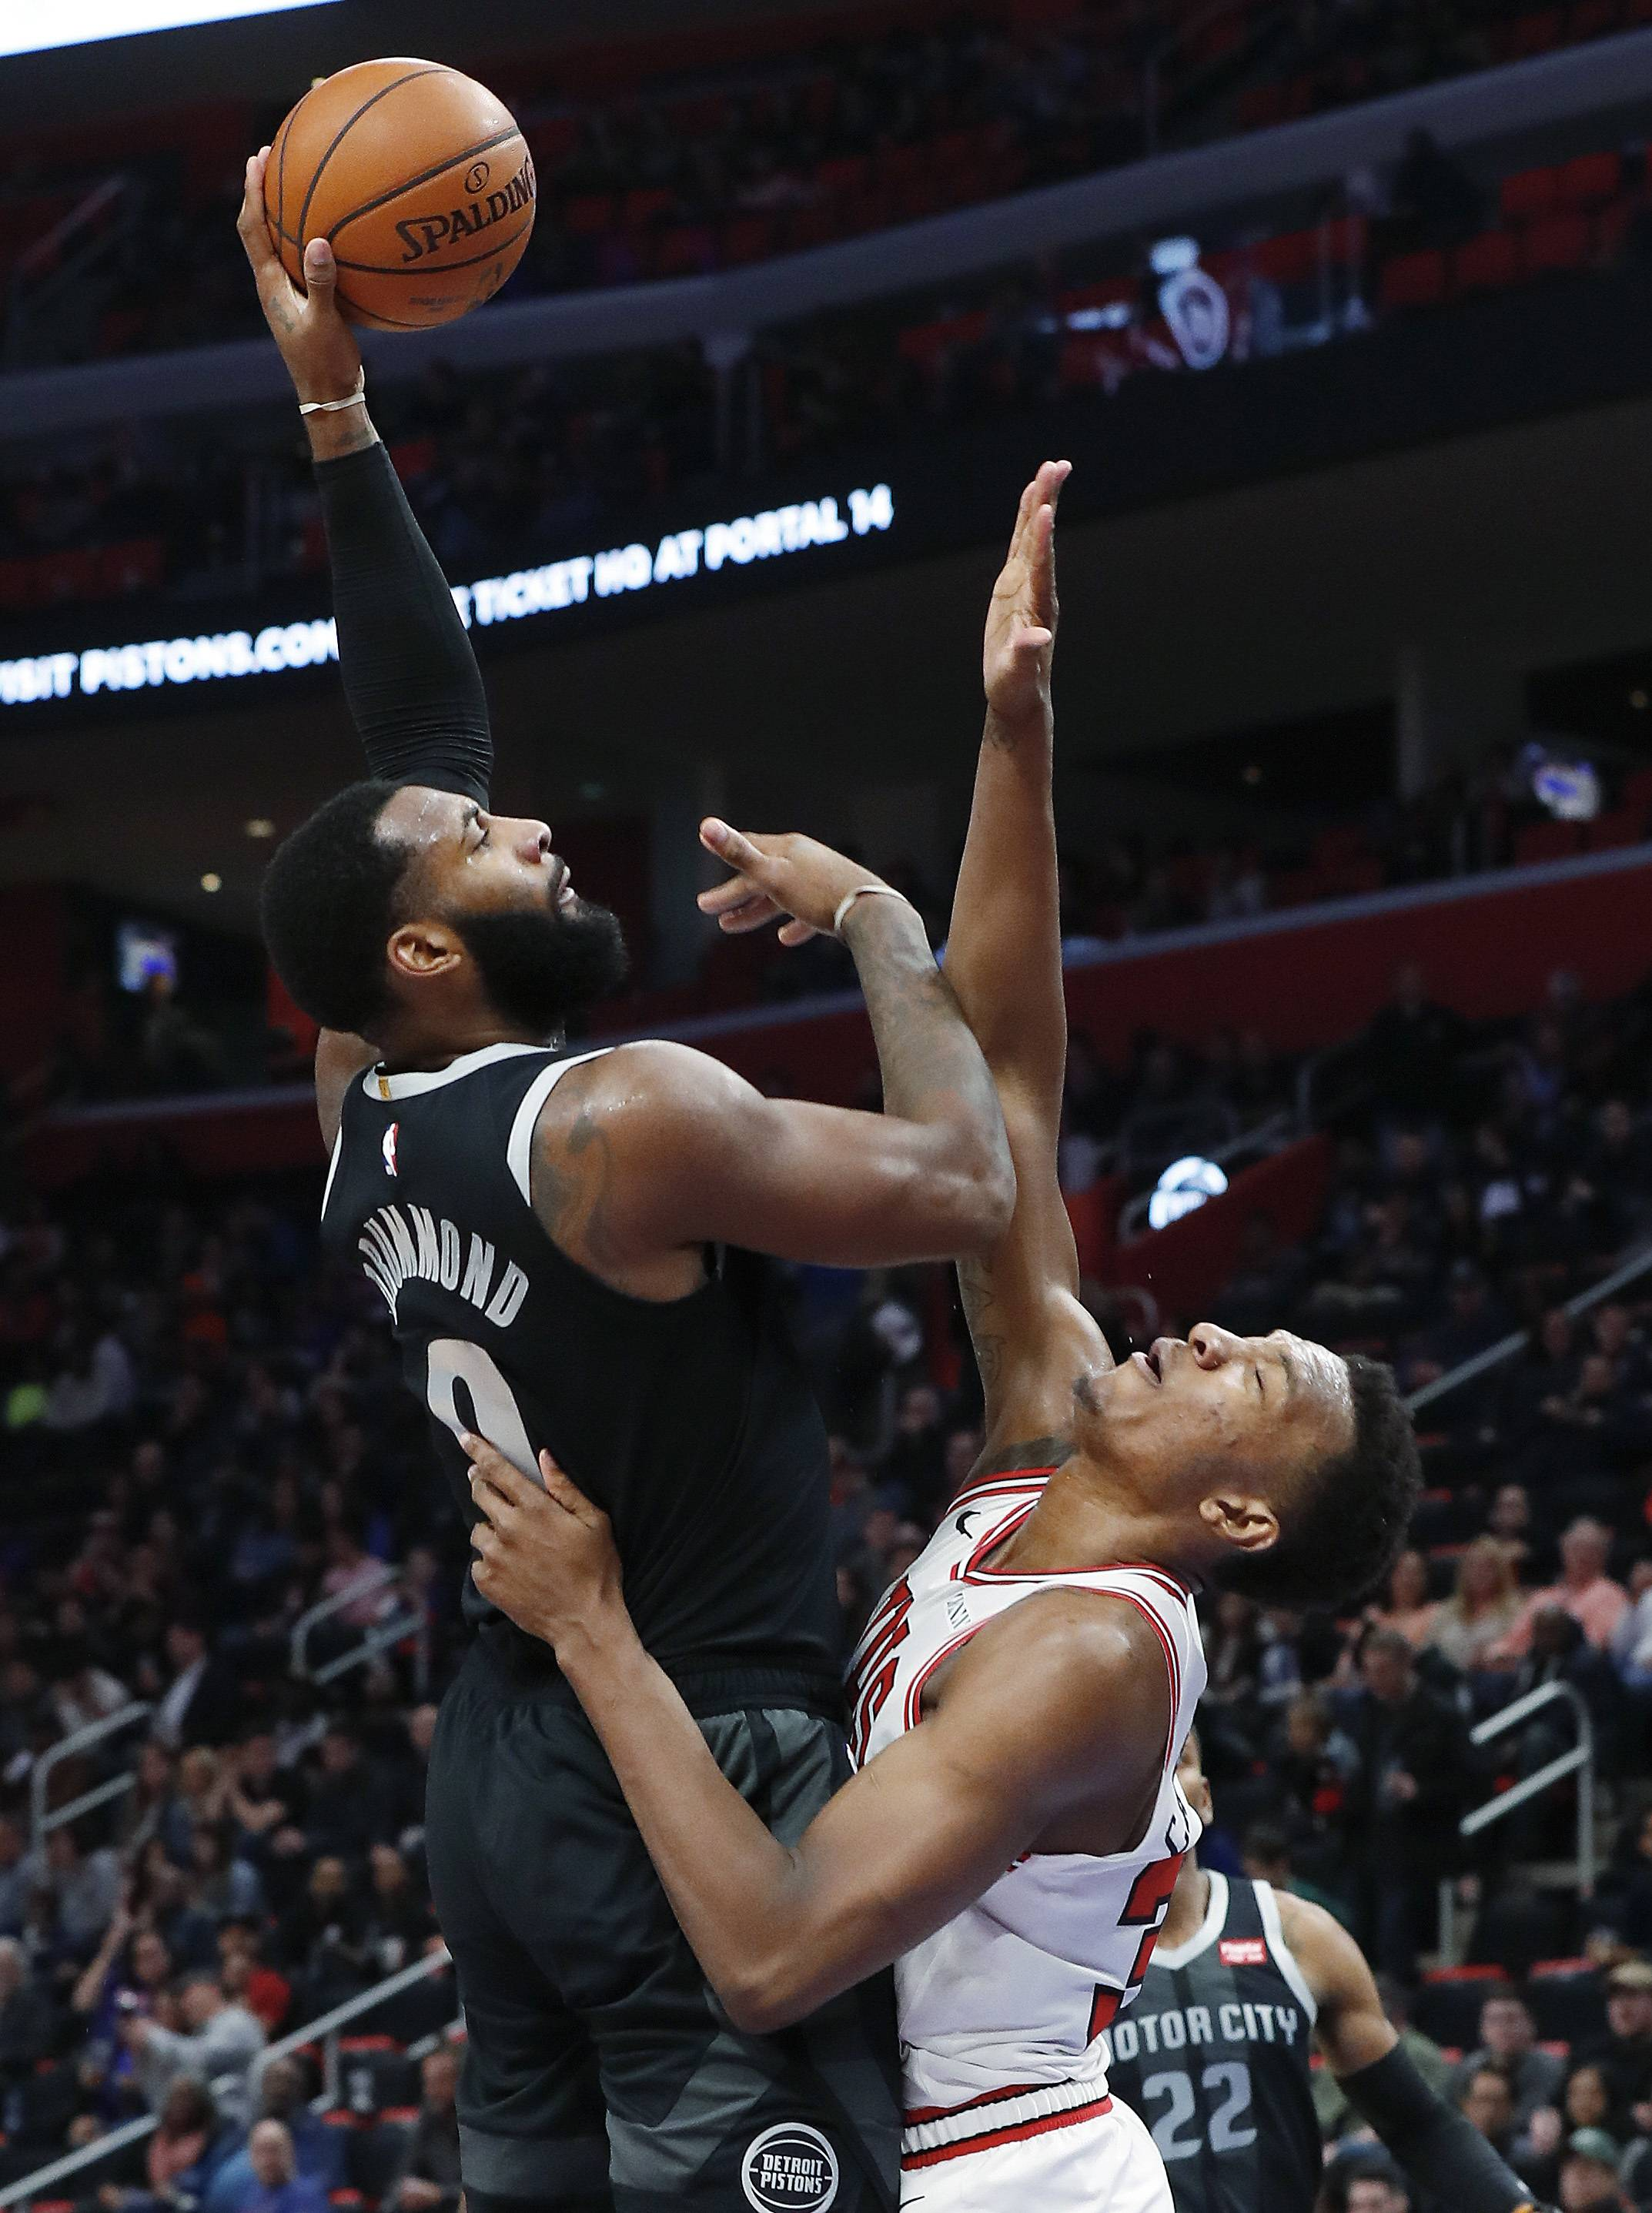 Carter comes alive with 28 points, but Bulls lose to Pistons